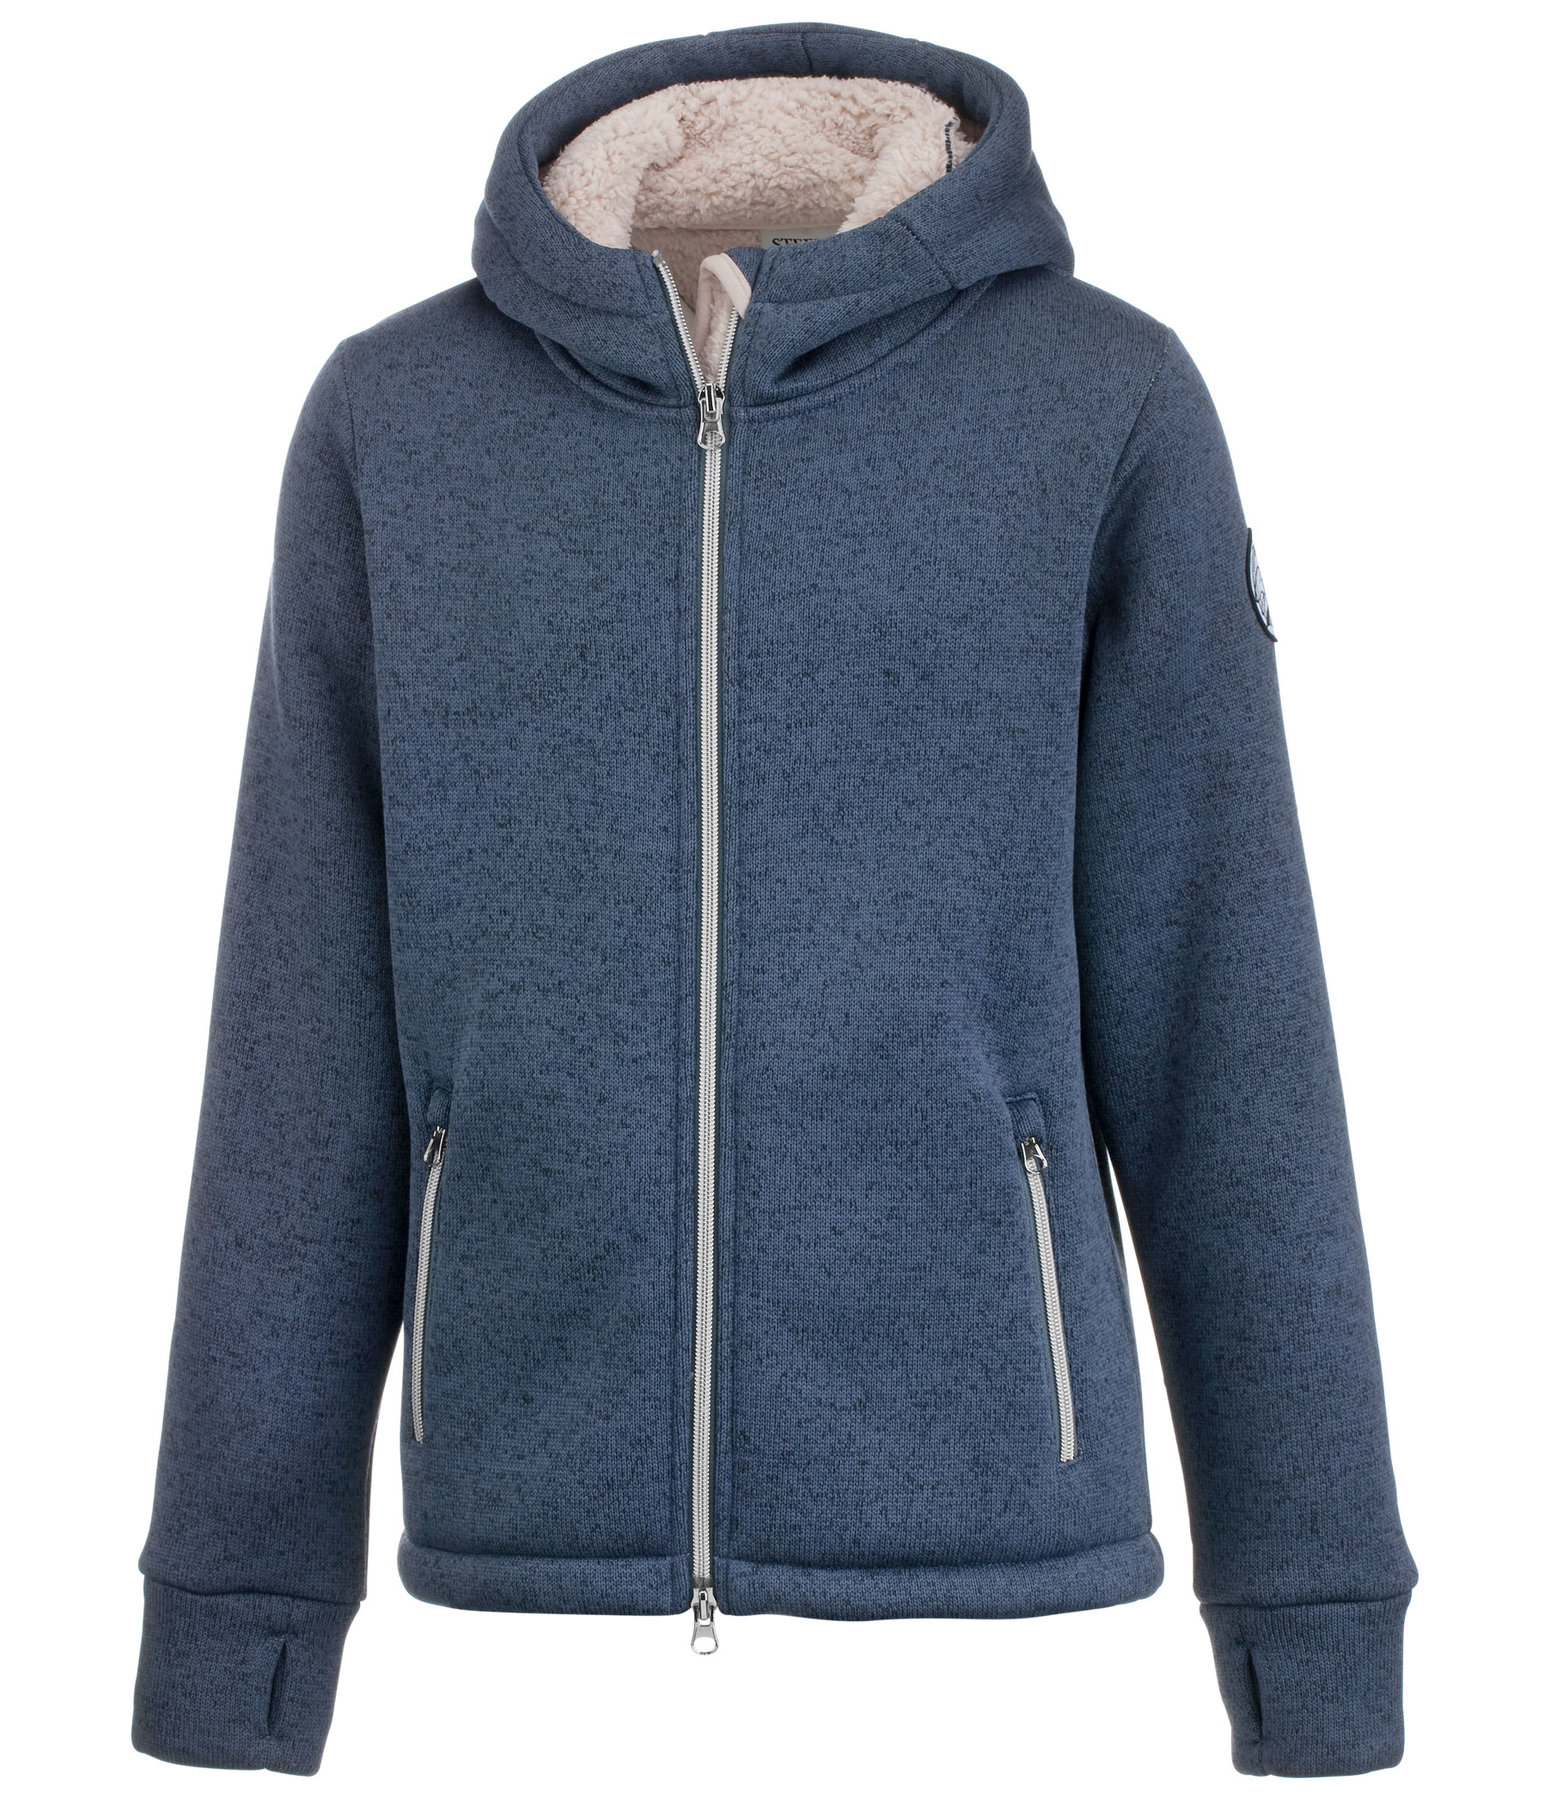 Children's Knitted Fleece Jacket Lotte